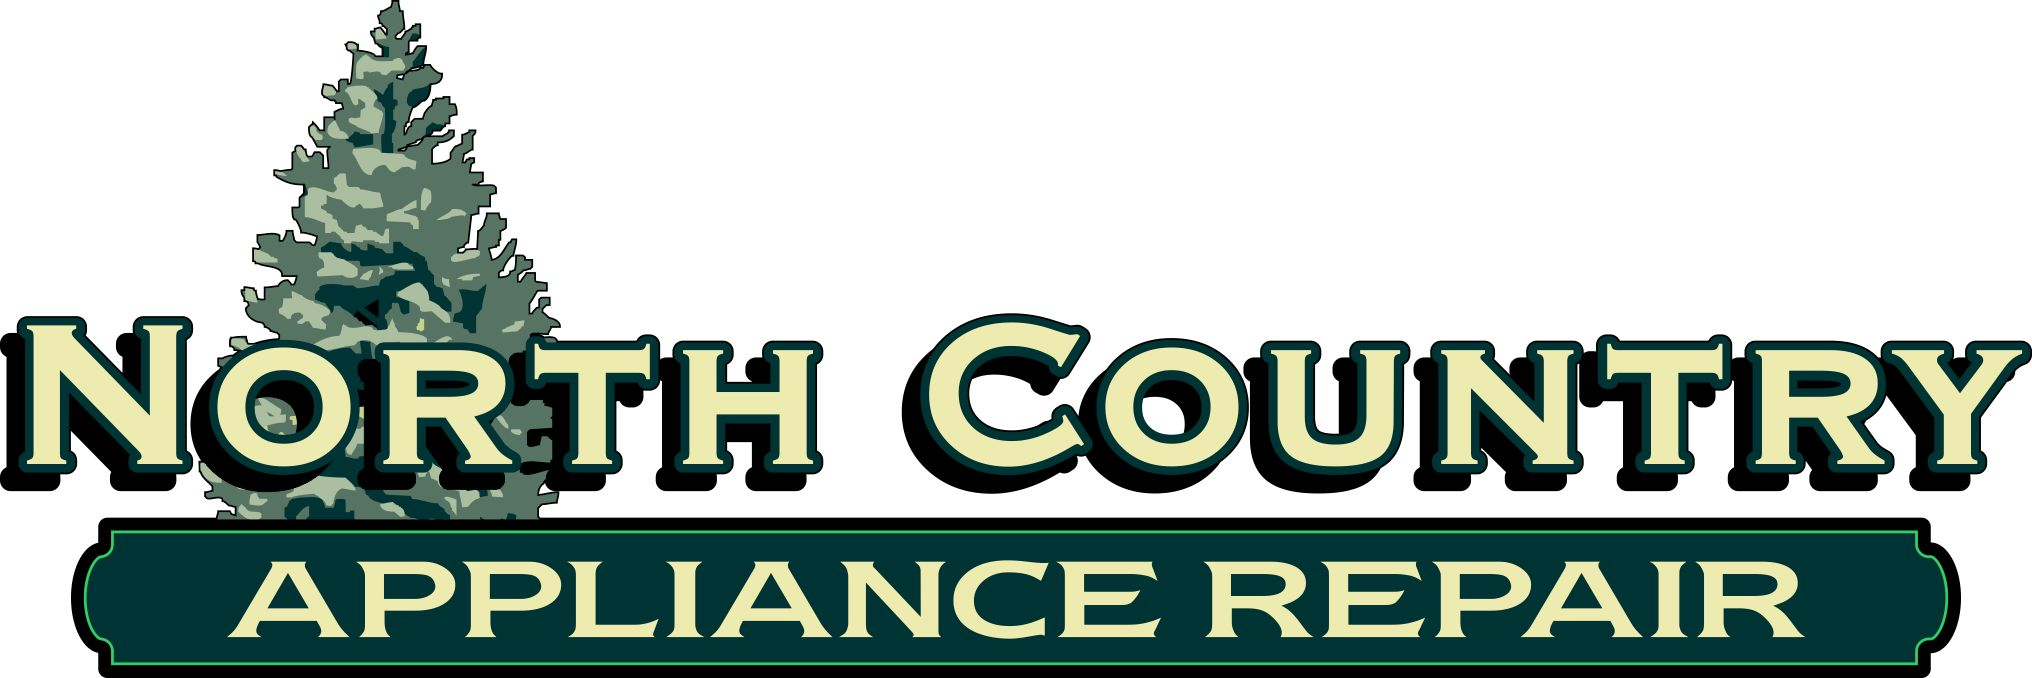 North Country Appliance Repair